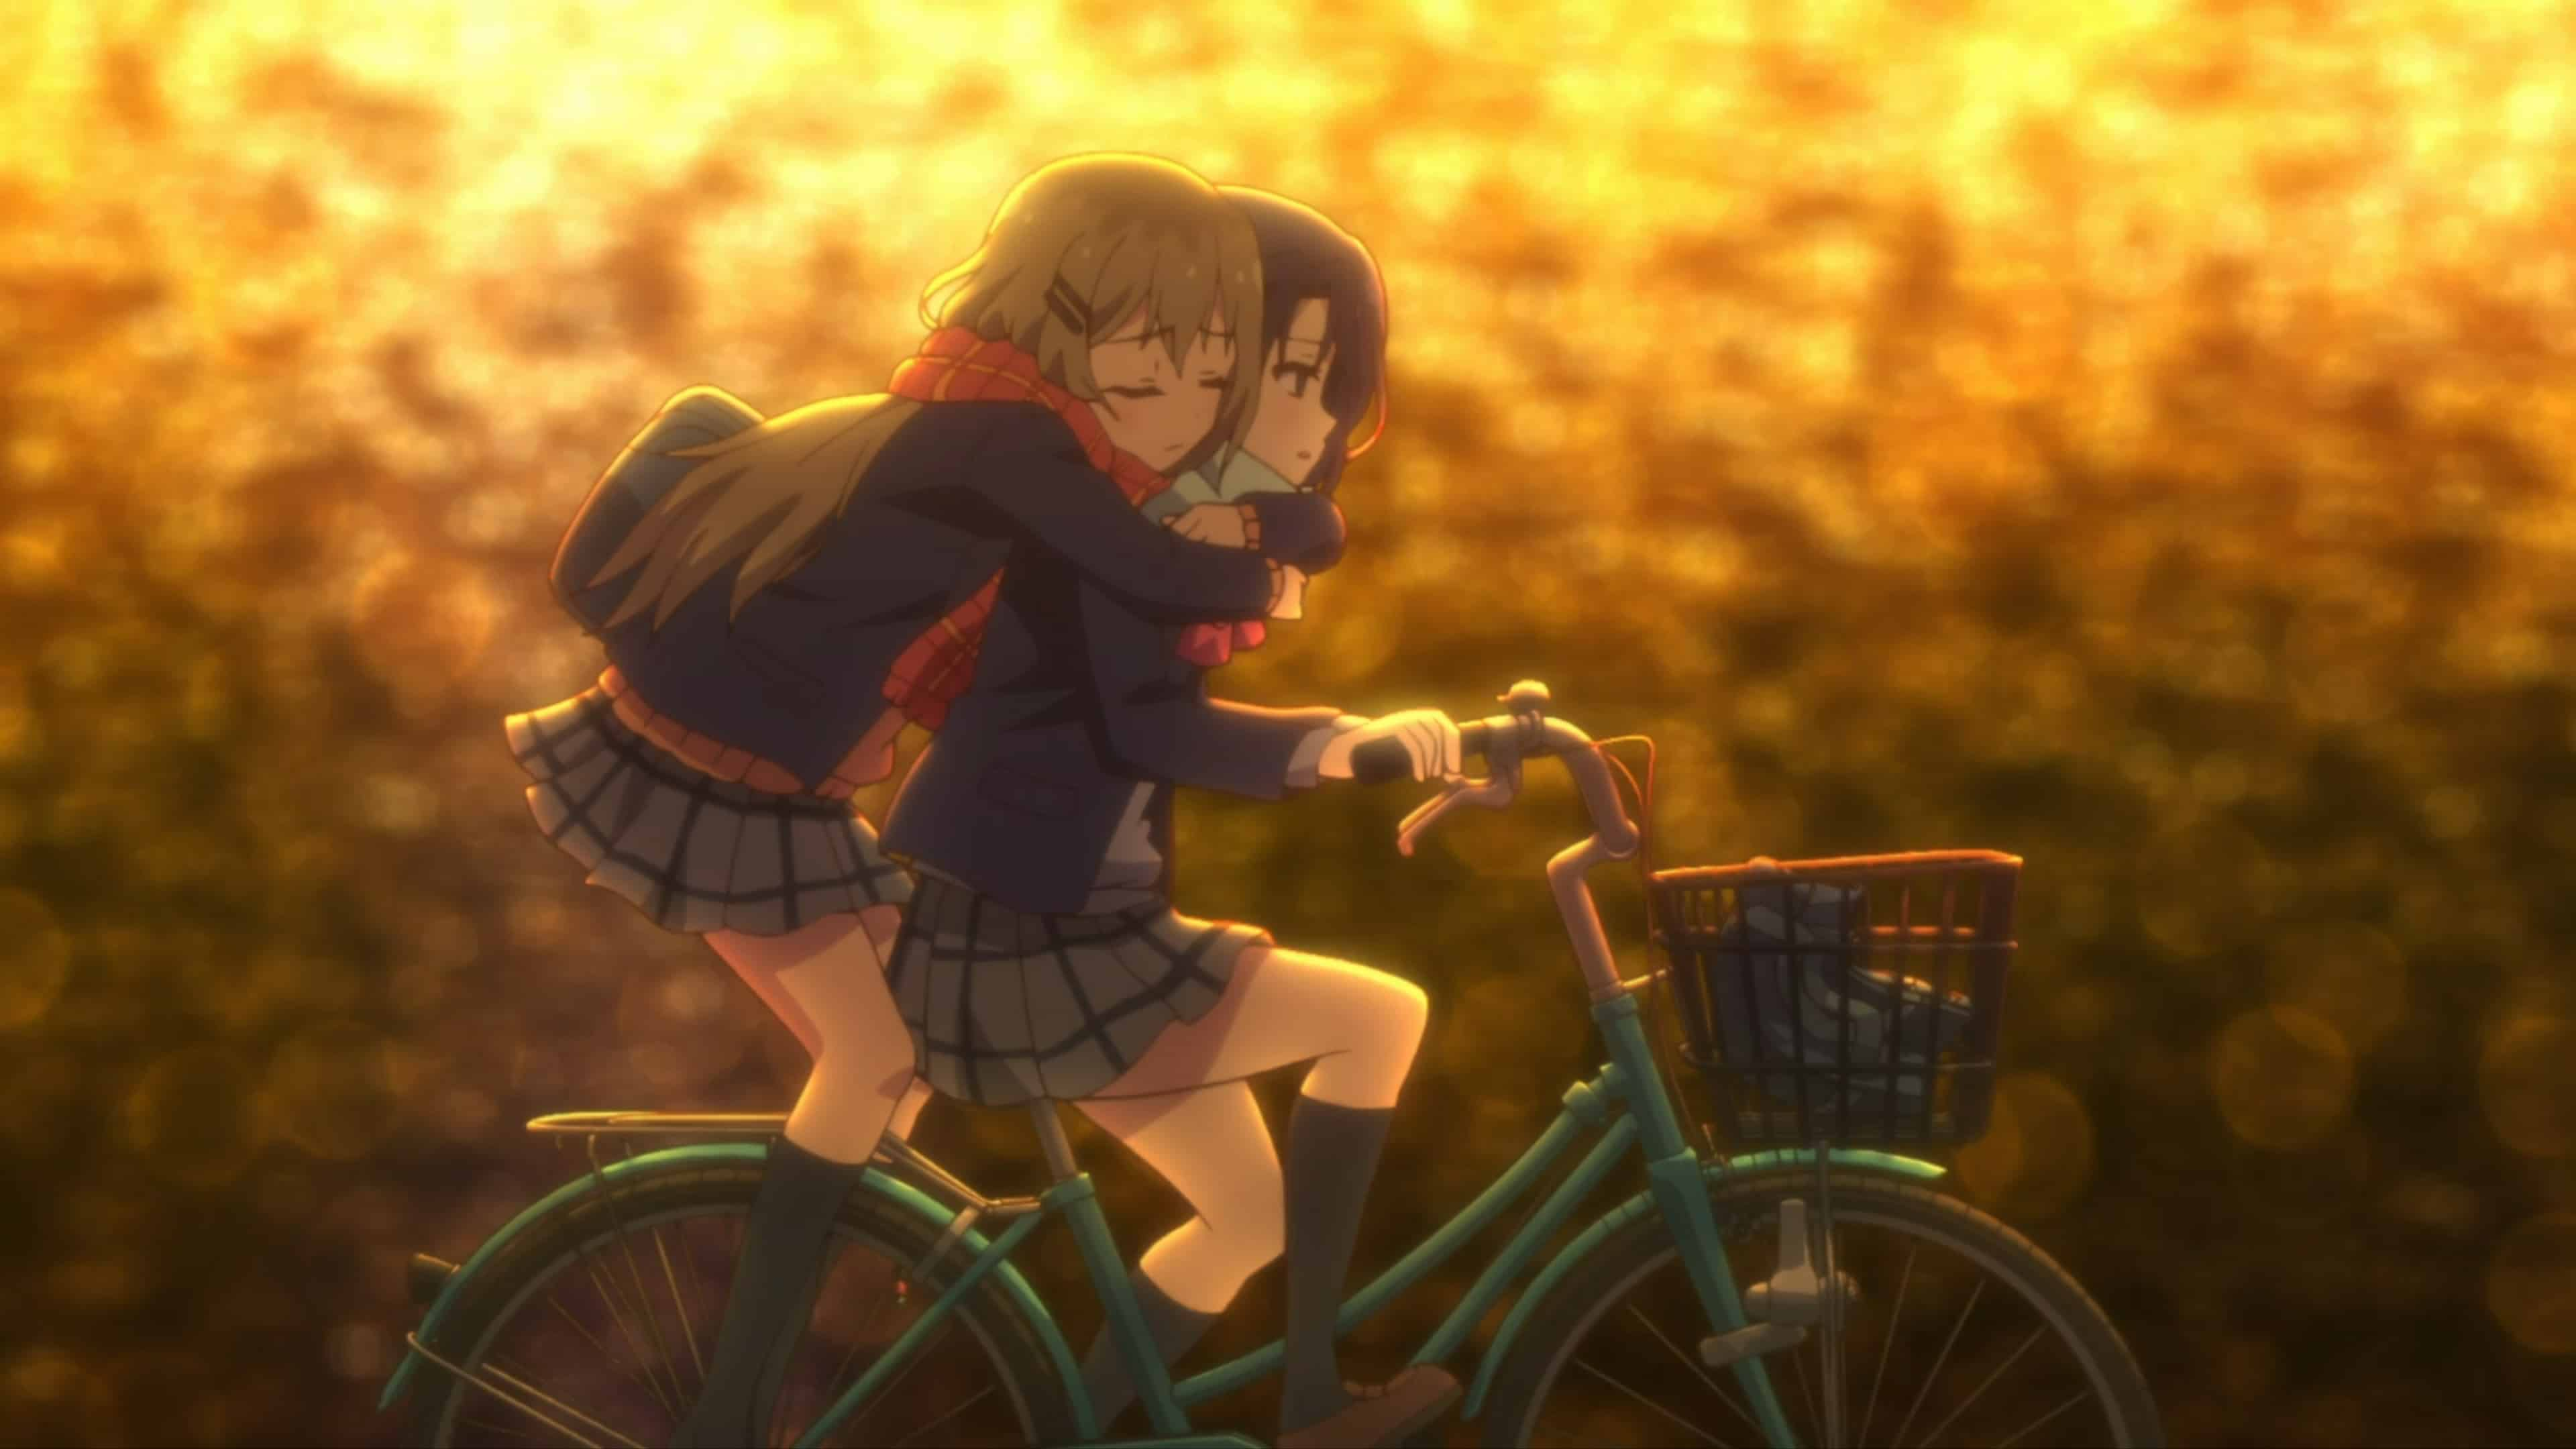 Shimamura on the back of Adachi's bike